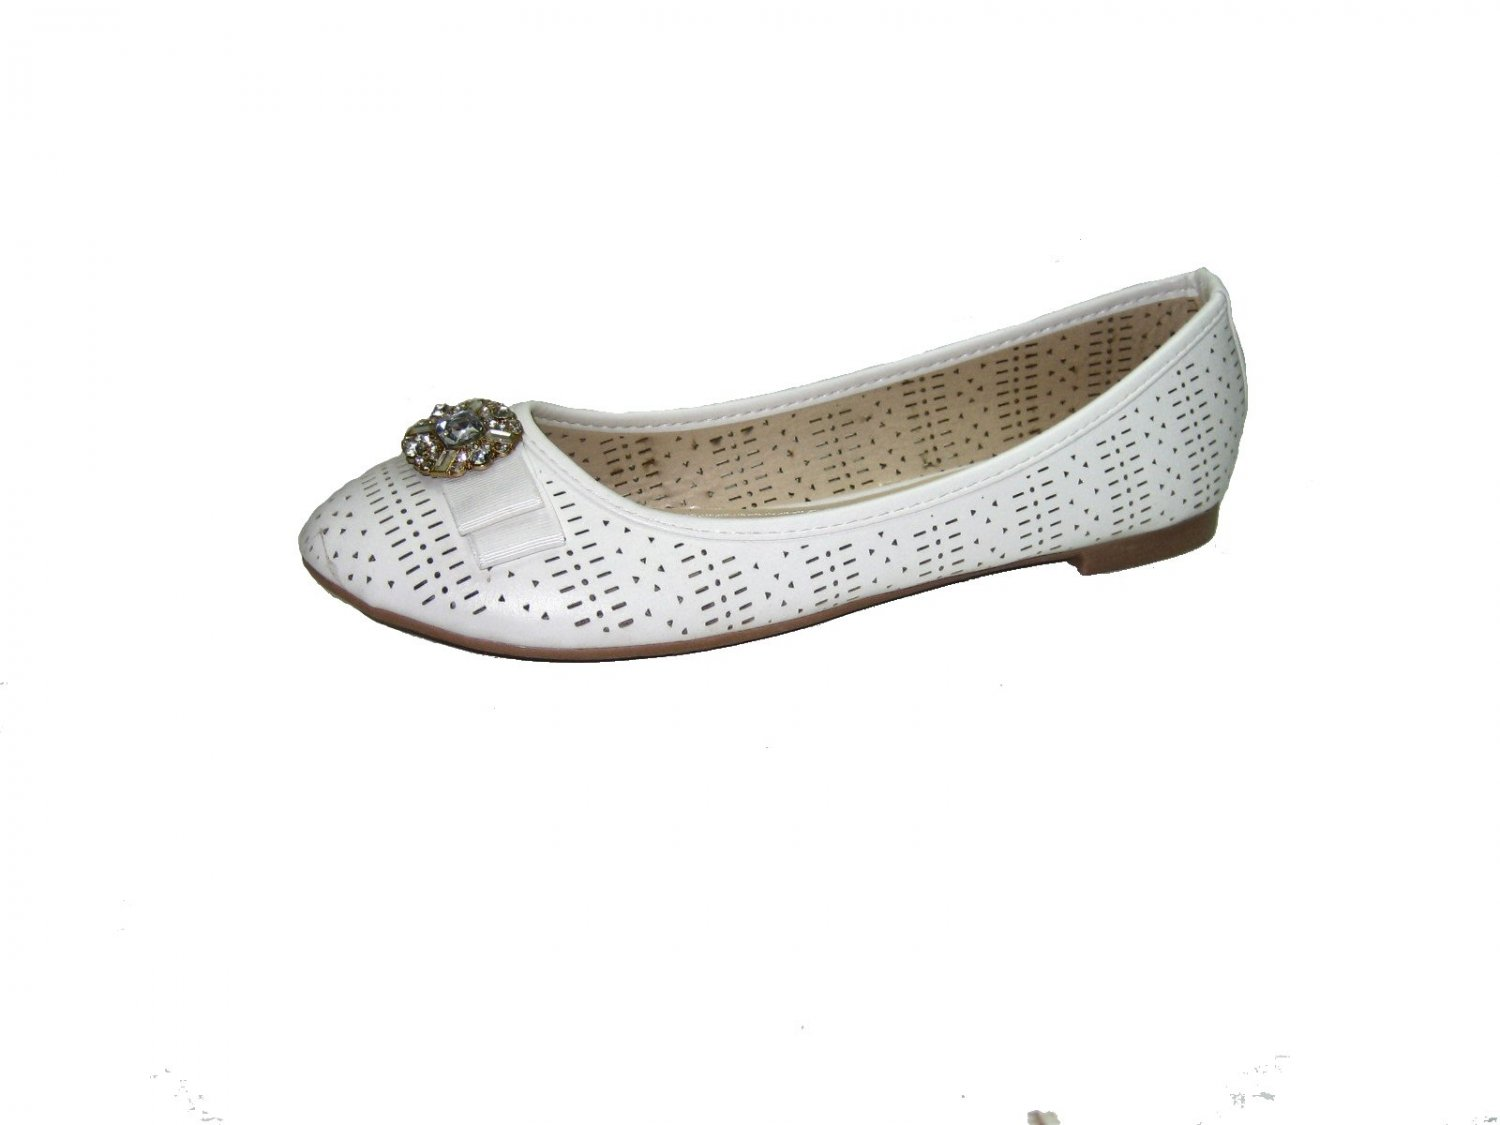 Top Moda SB-25 ballerina flats slip on pumps rhinestone bejeweled bow toe shoes white size 5